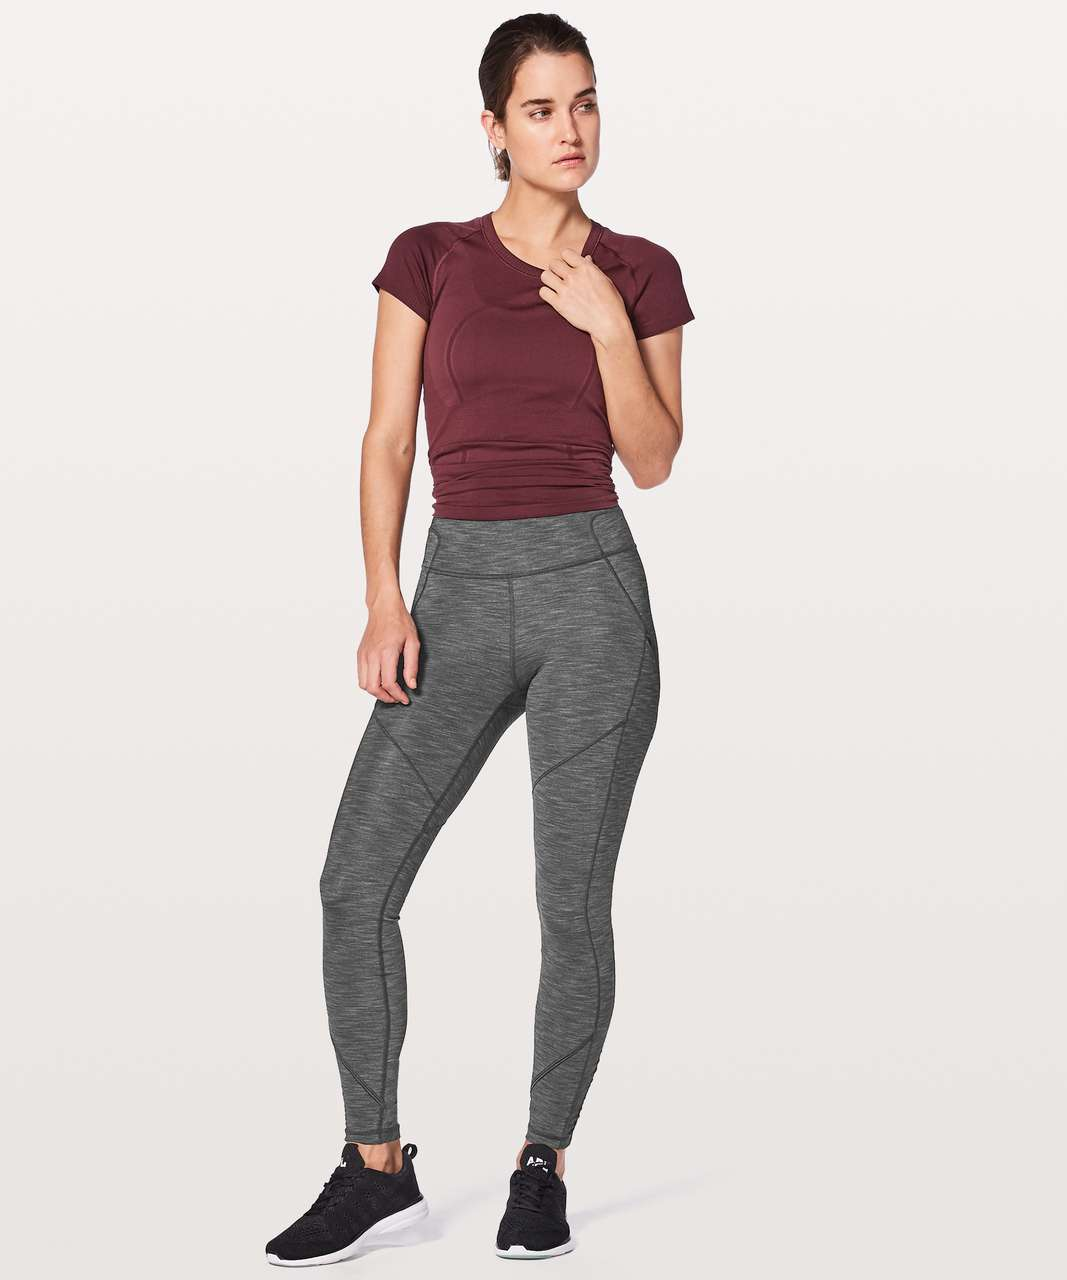 Lululemon Rain-On Train-On Tight - Heathered Black